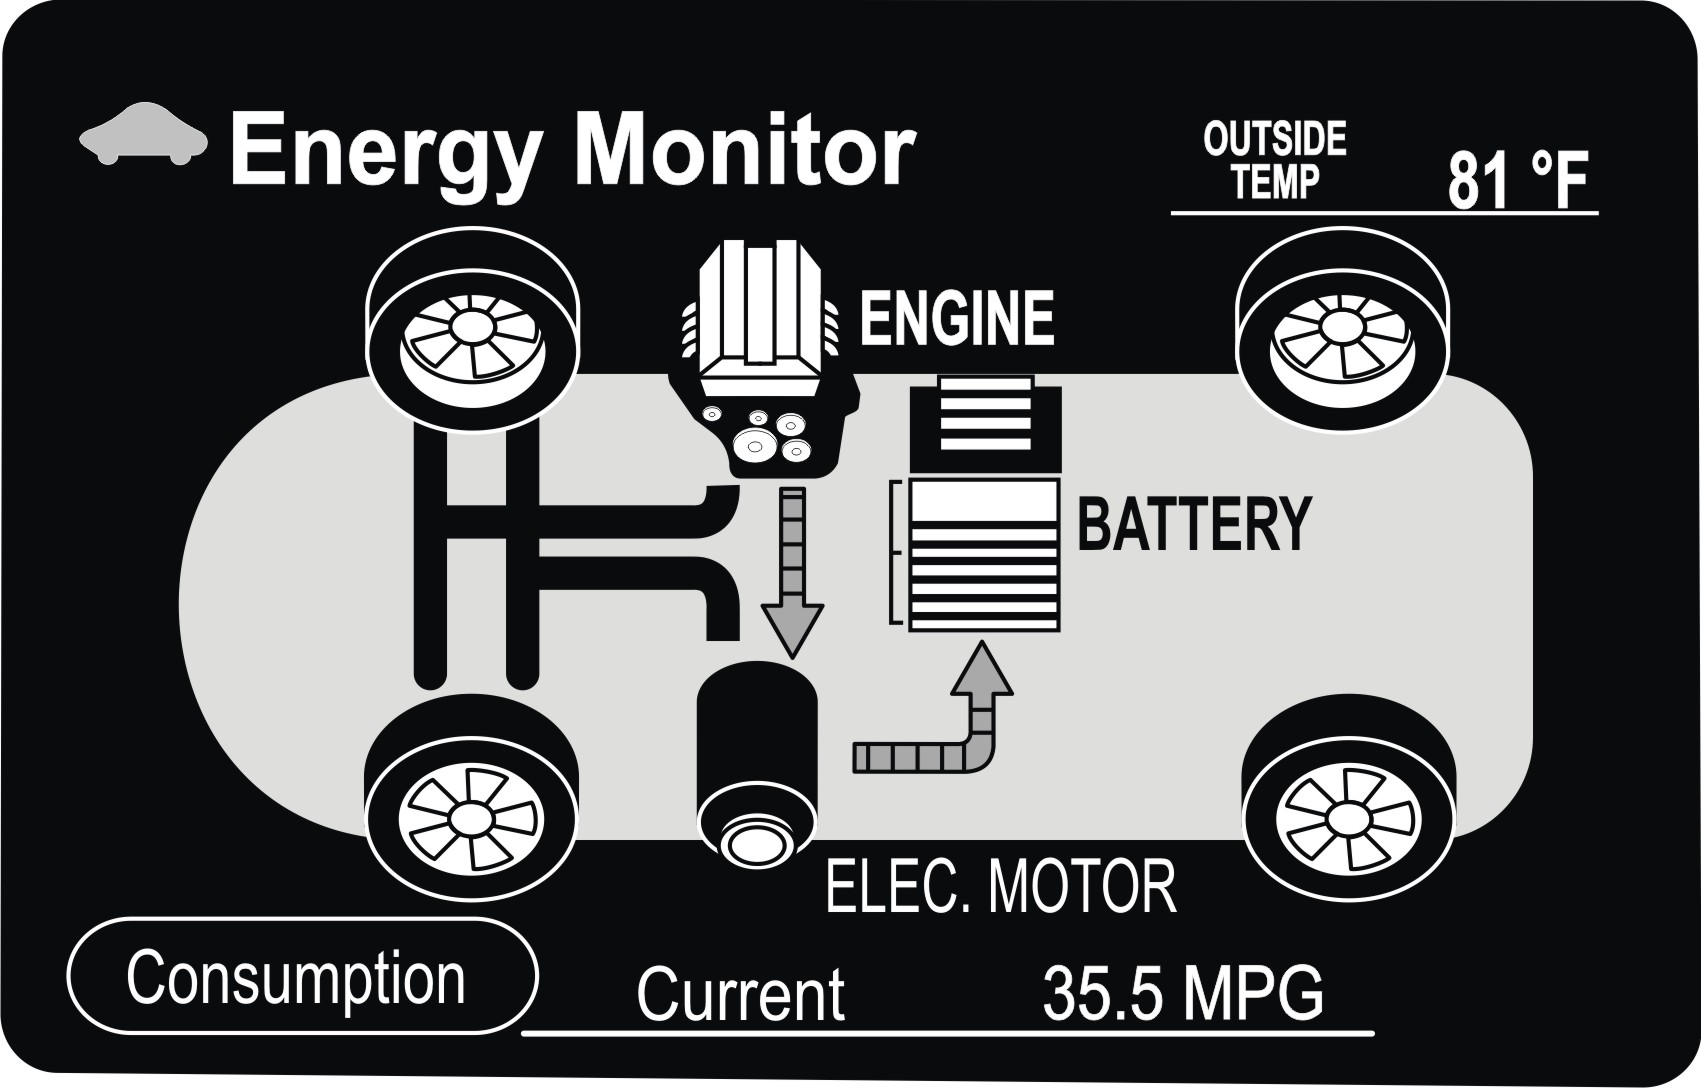 ATSG Ford Escape Hybrid - Torque Monitor Information Fig. 7